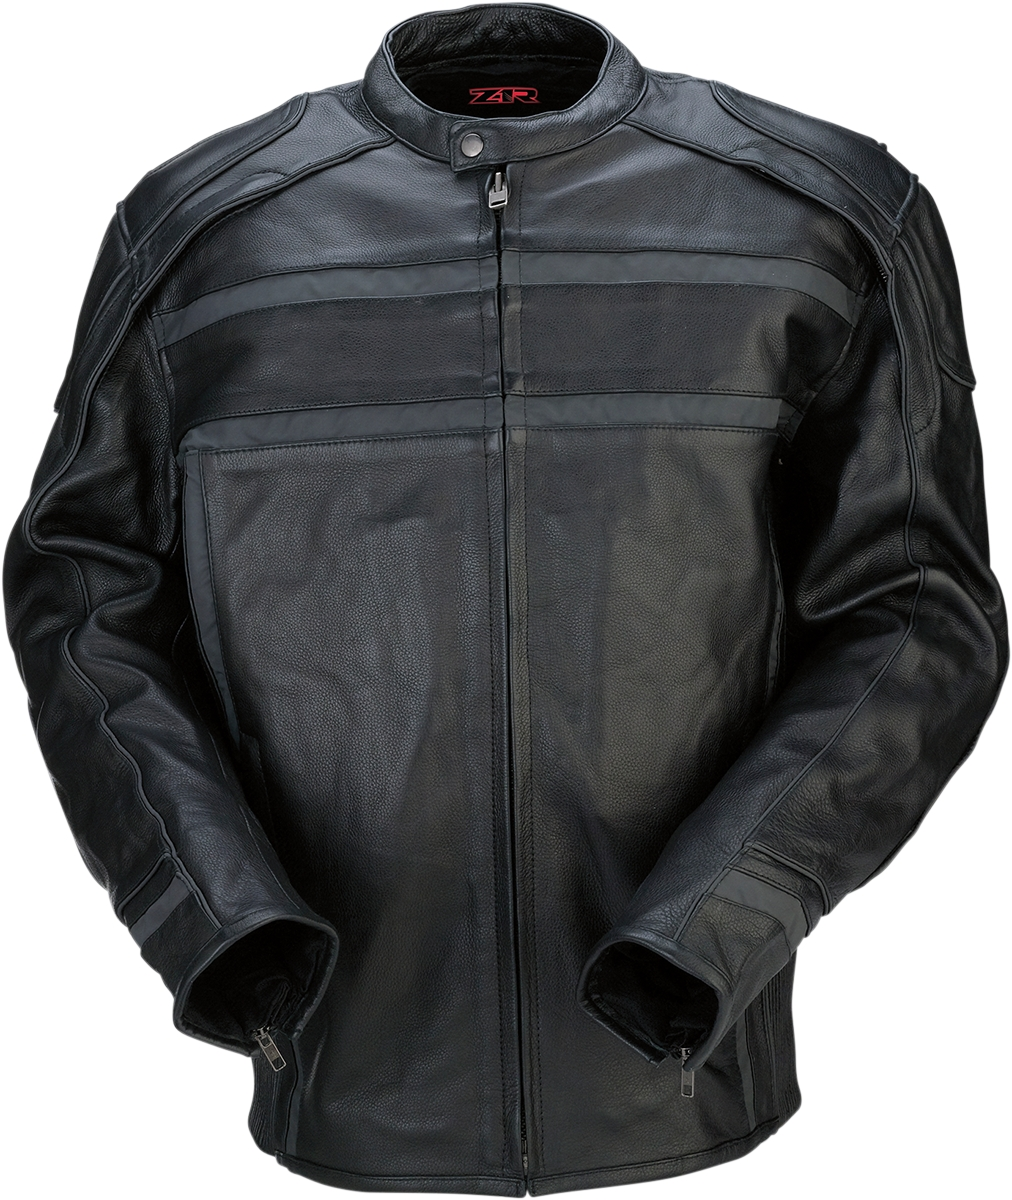 Z1R 444 Leather Jacket